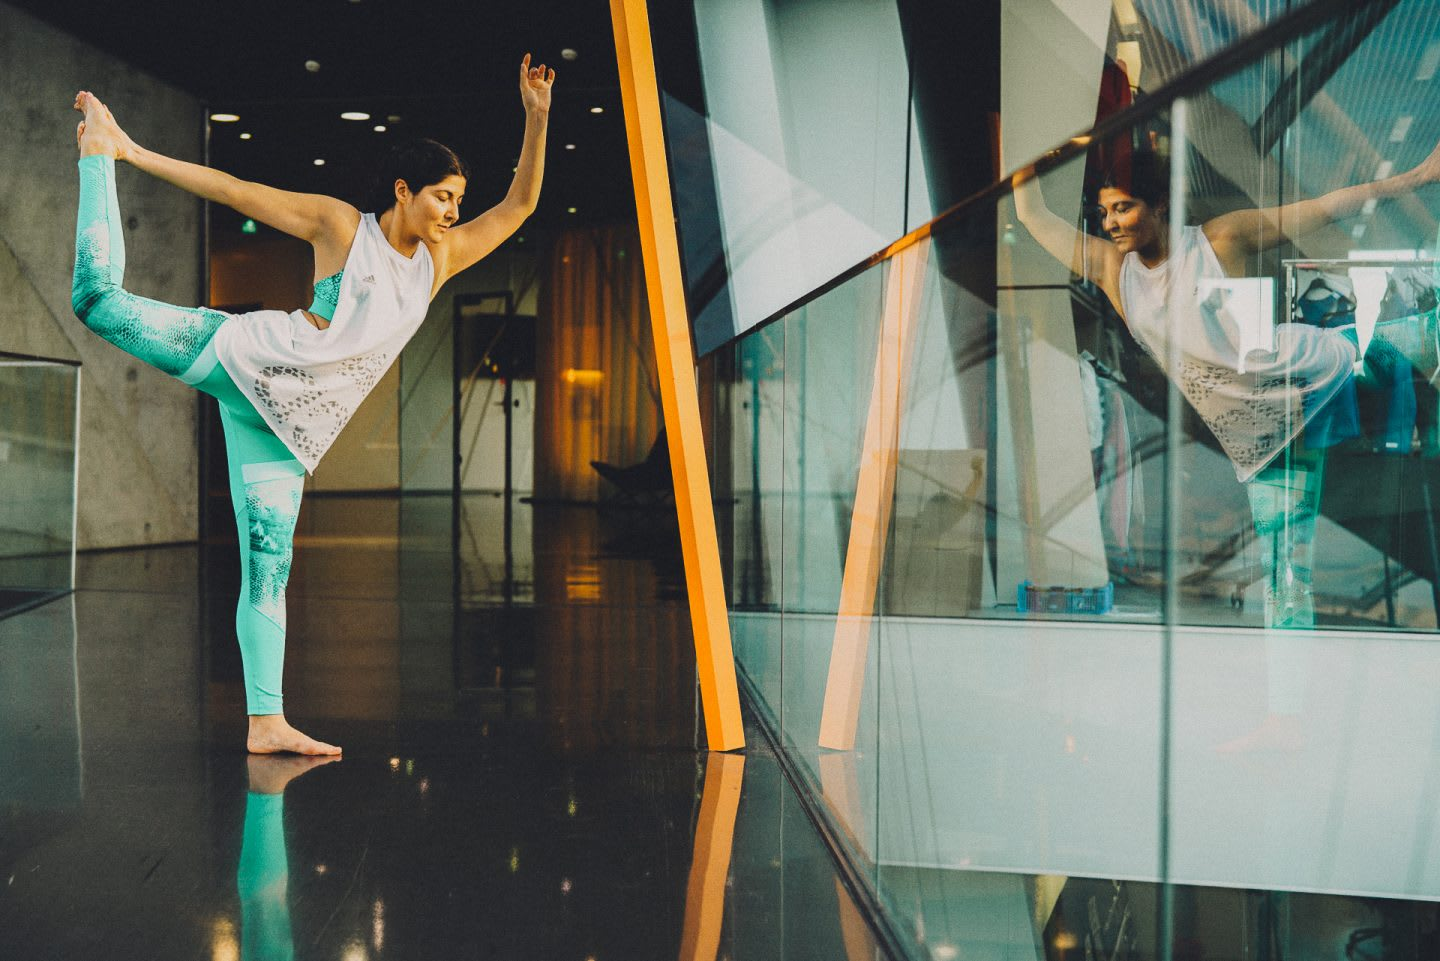 A female yogi doing the Dancer pose in an office building at adidas. adidas employee, flow, creativity, leadership, team, GamePlan A, sports, business, mindset